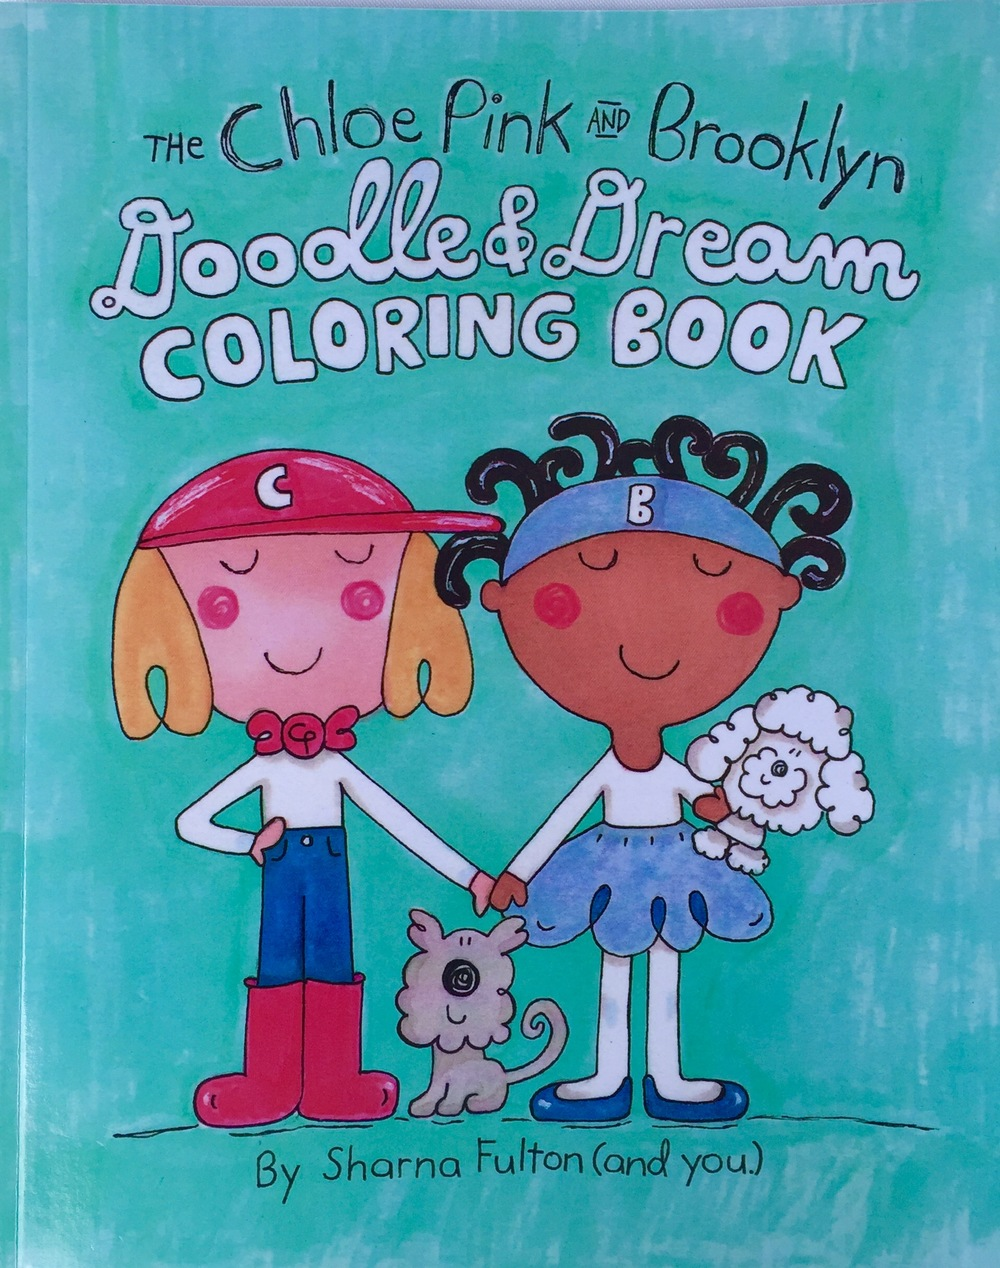 The Chloe Pink and Brooklyn Doodle & Dream Coloring Book